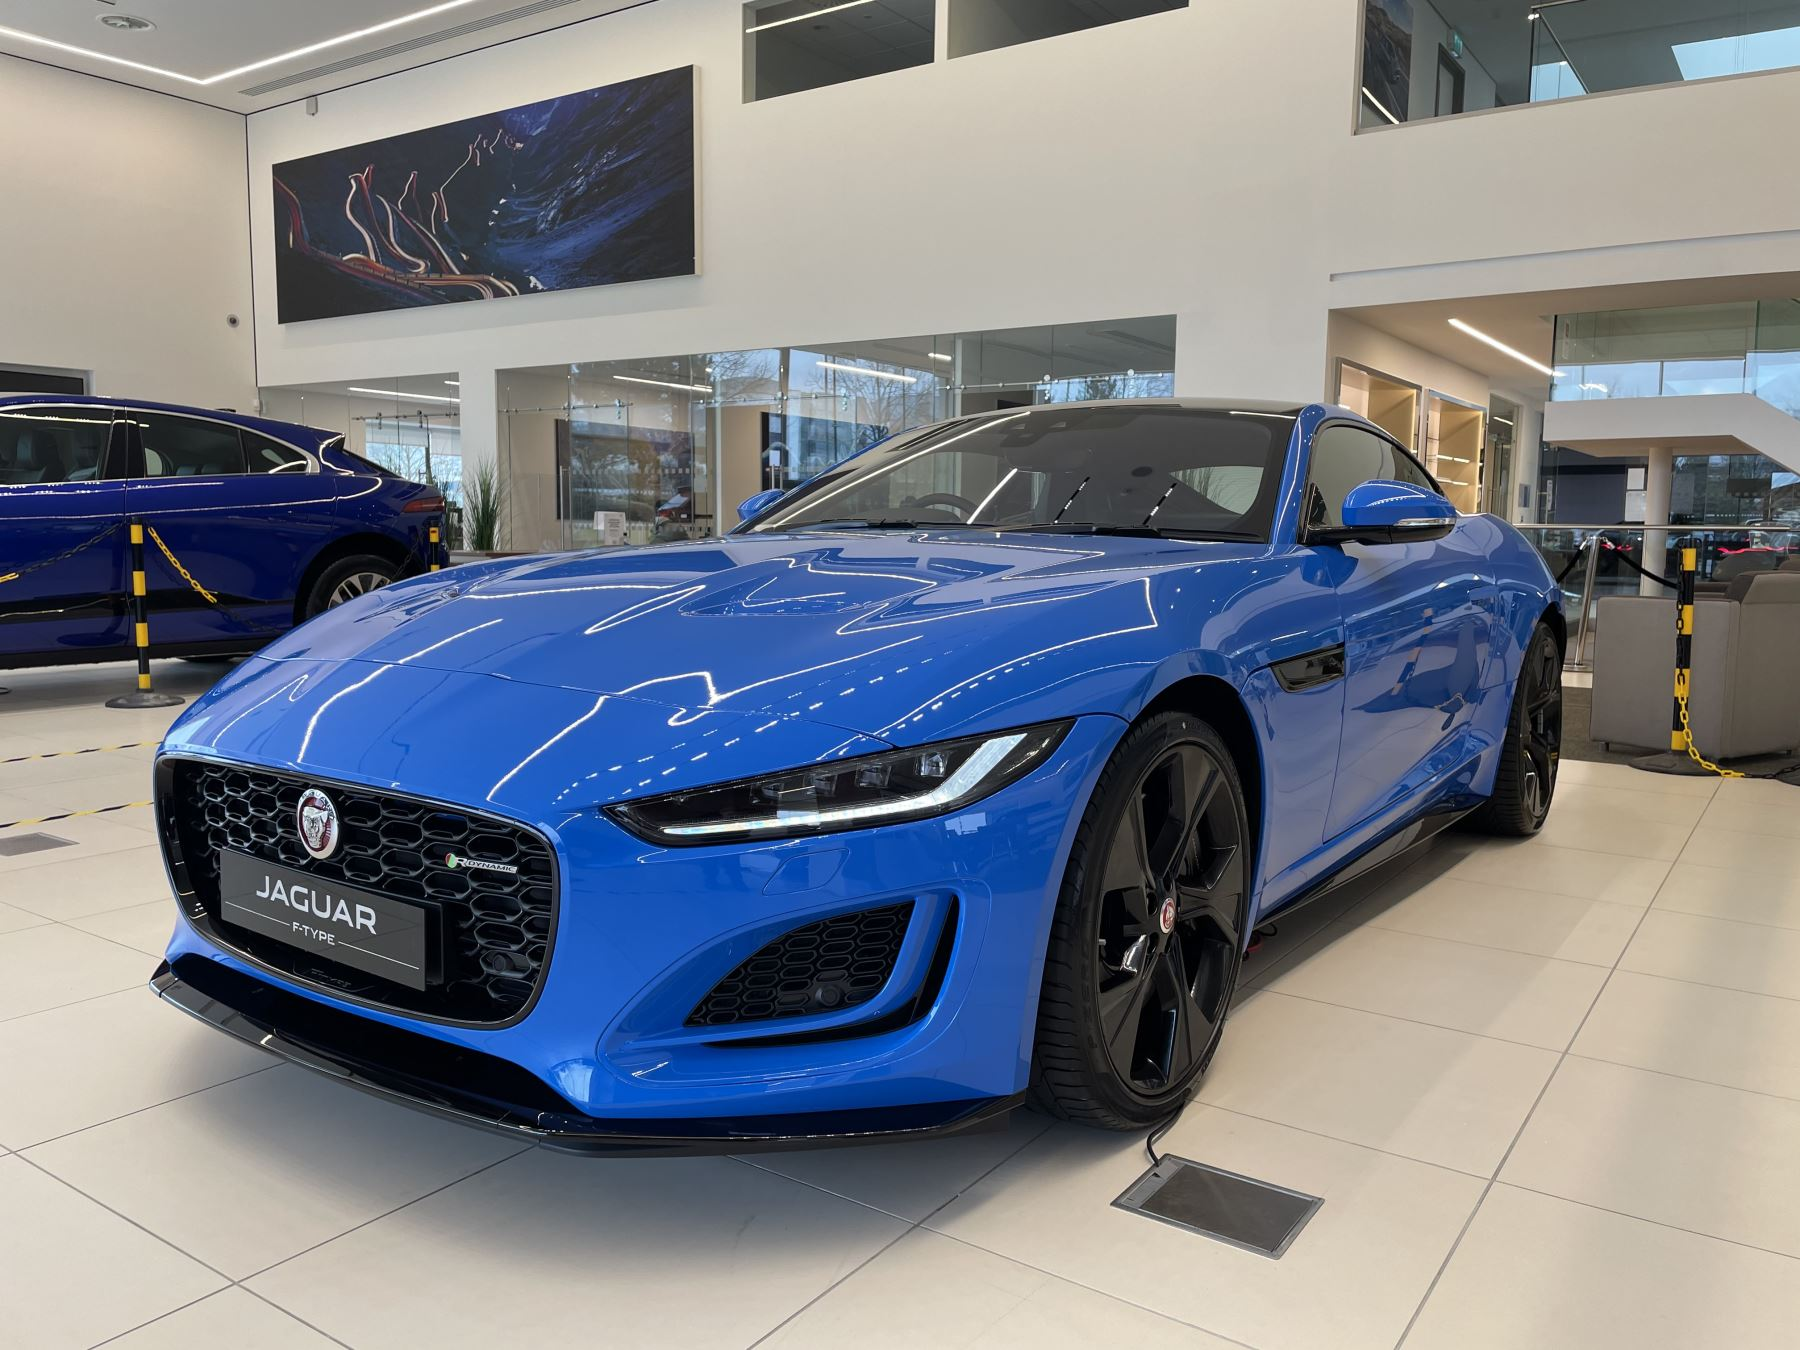 Jaguar F-TYPE 5.0 P450 Supercharged V8 Reims Edition 2dr Auto image 5